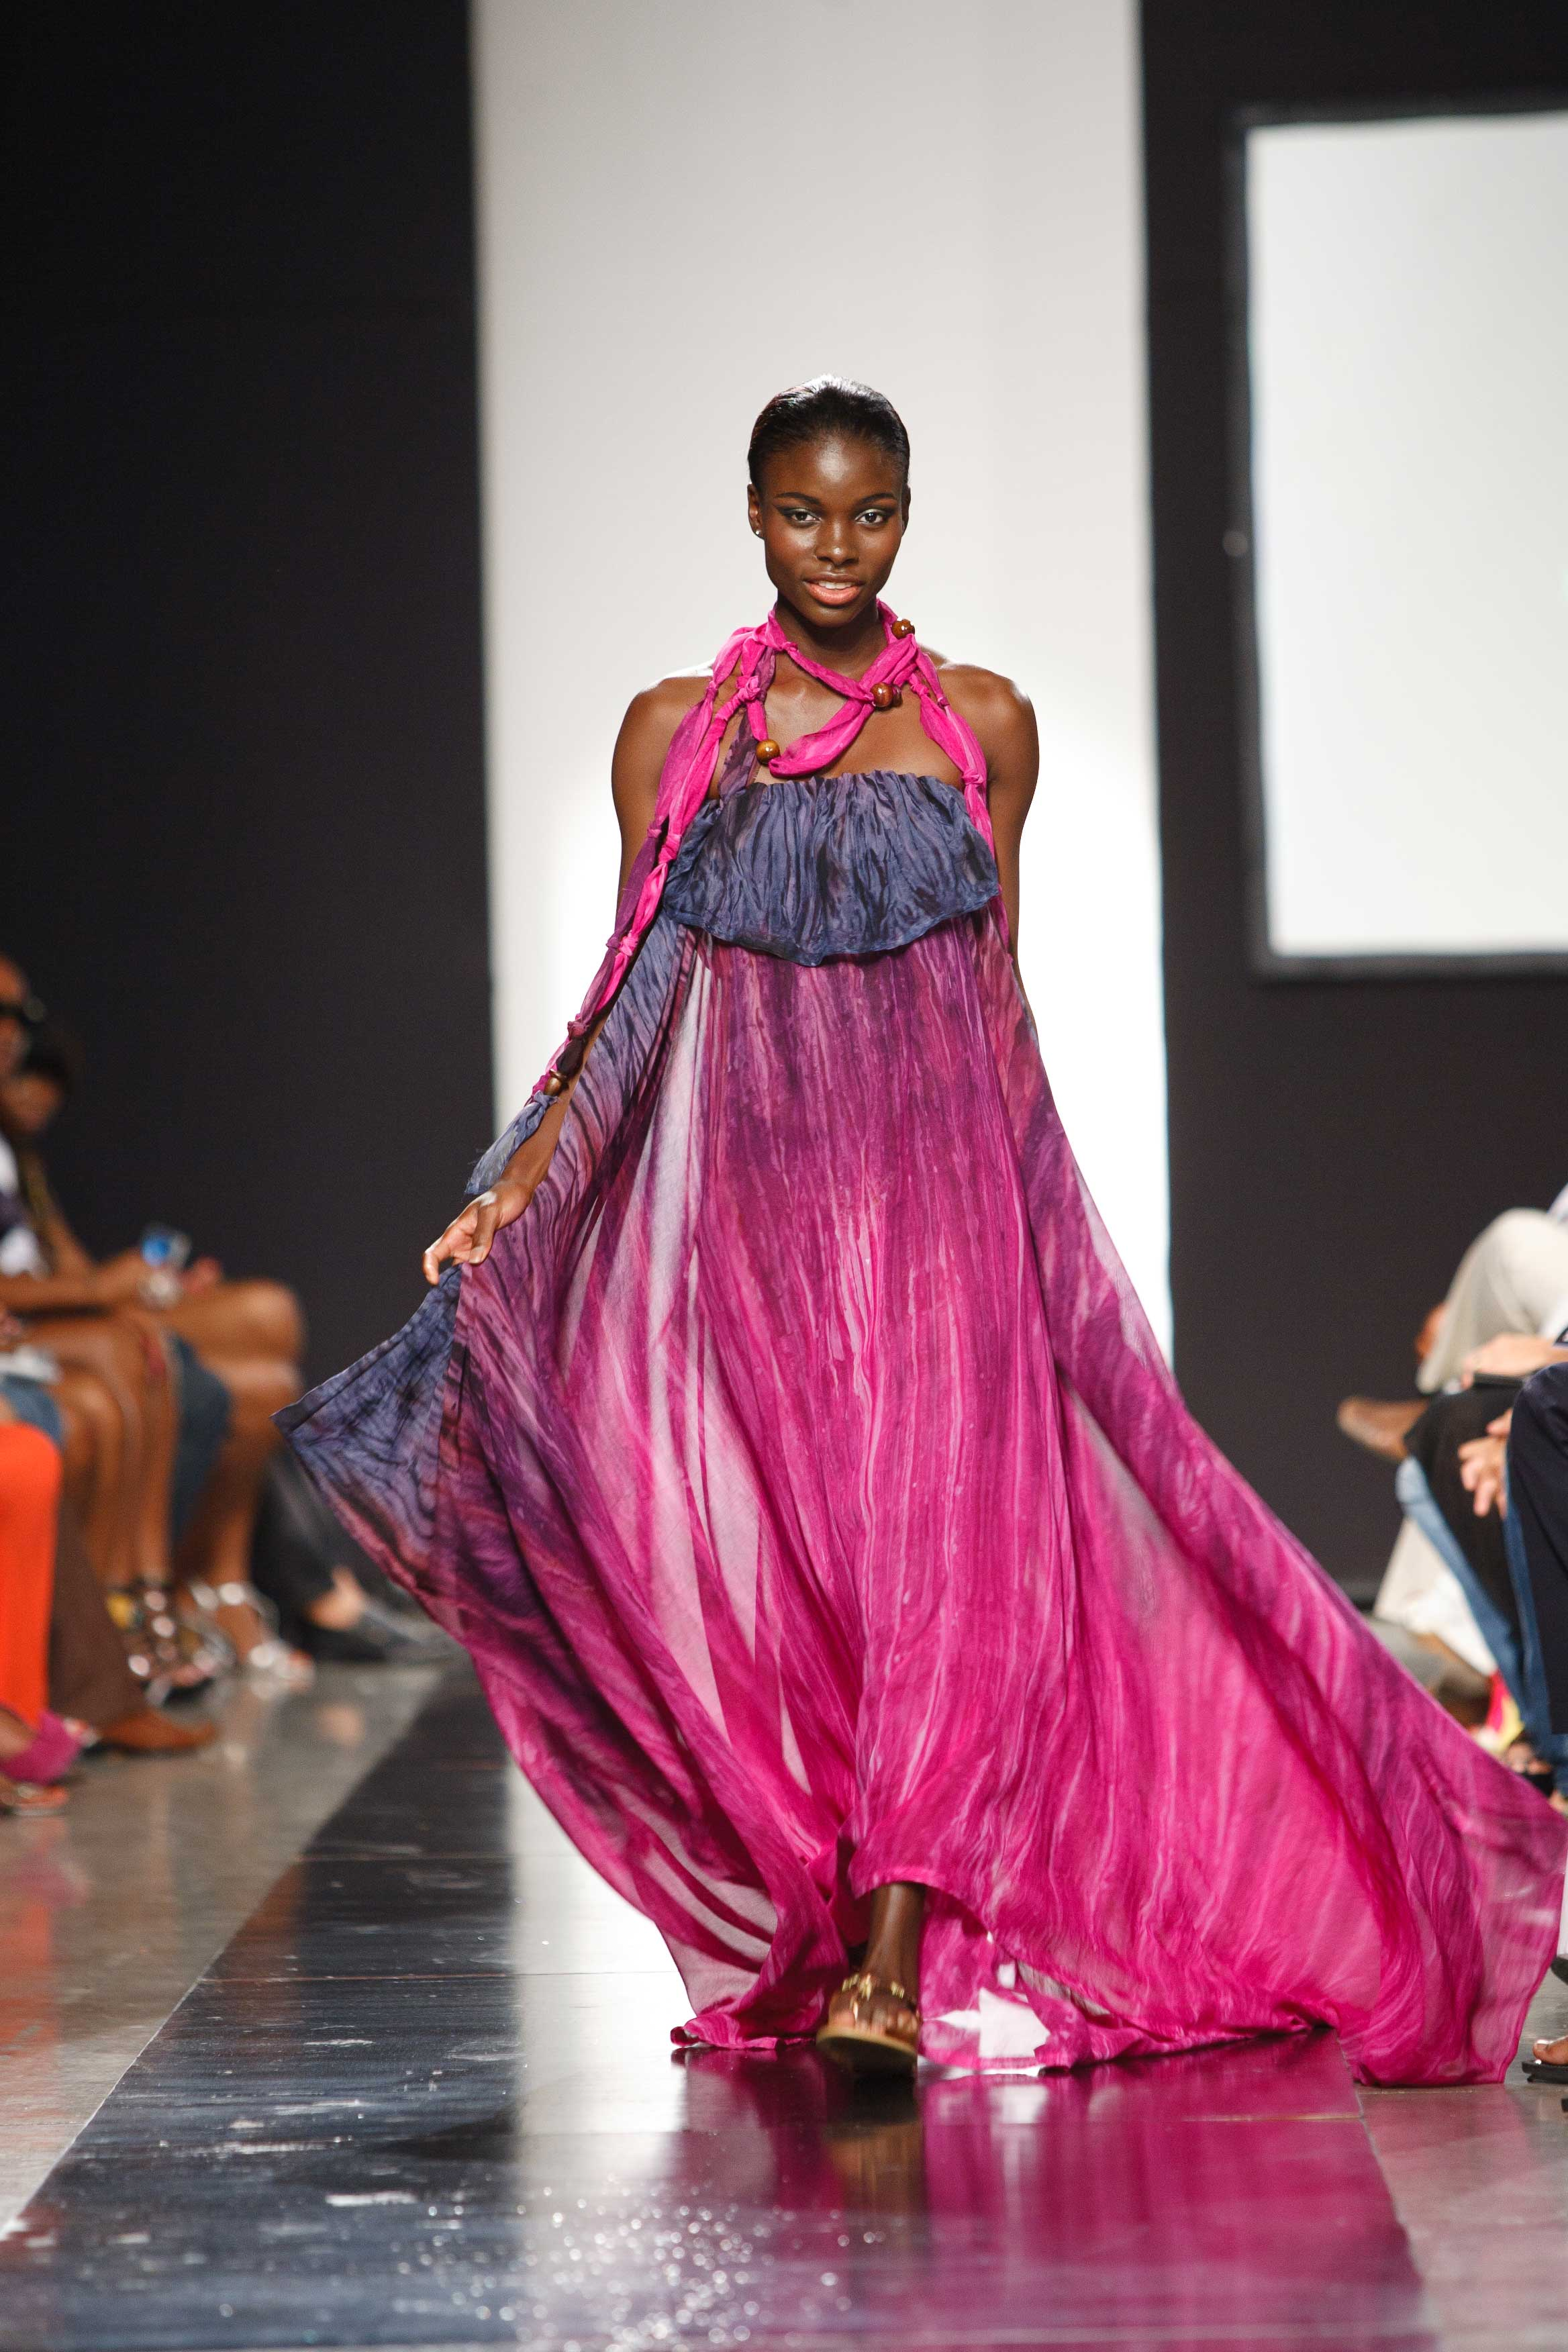 A captive audience was treated to the majesty of Kaj's sheer strapless Bohemian lounge dress, with wooden beaded fabric accents, at the 2010 CFW during the Shore Culture presentation. Photo courtesy Pulse Investments Limited.